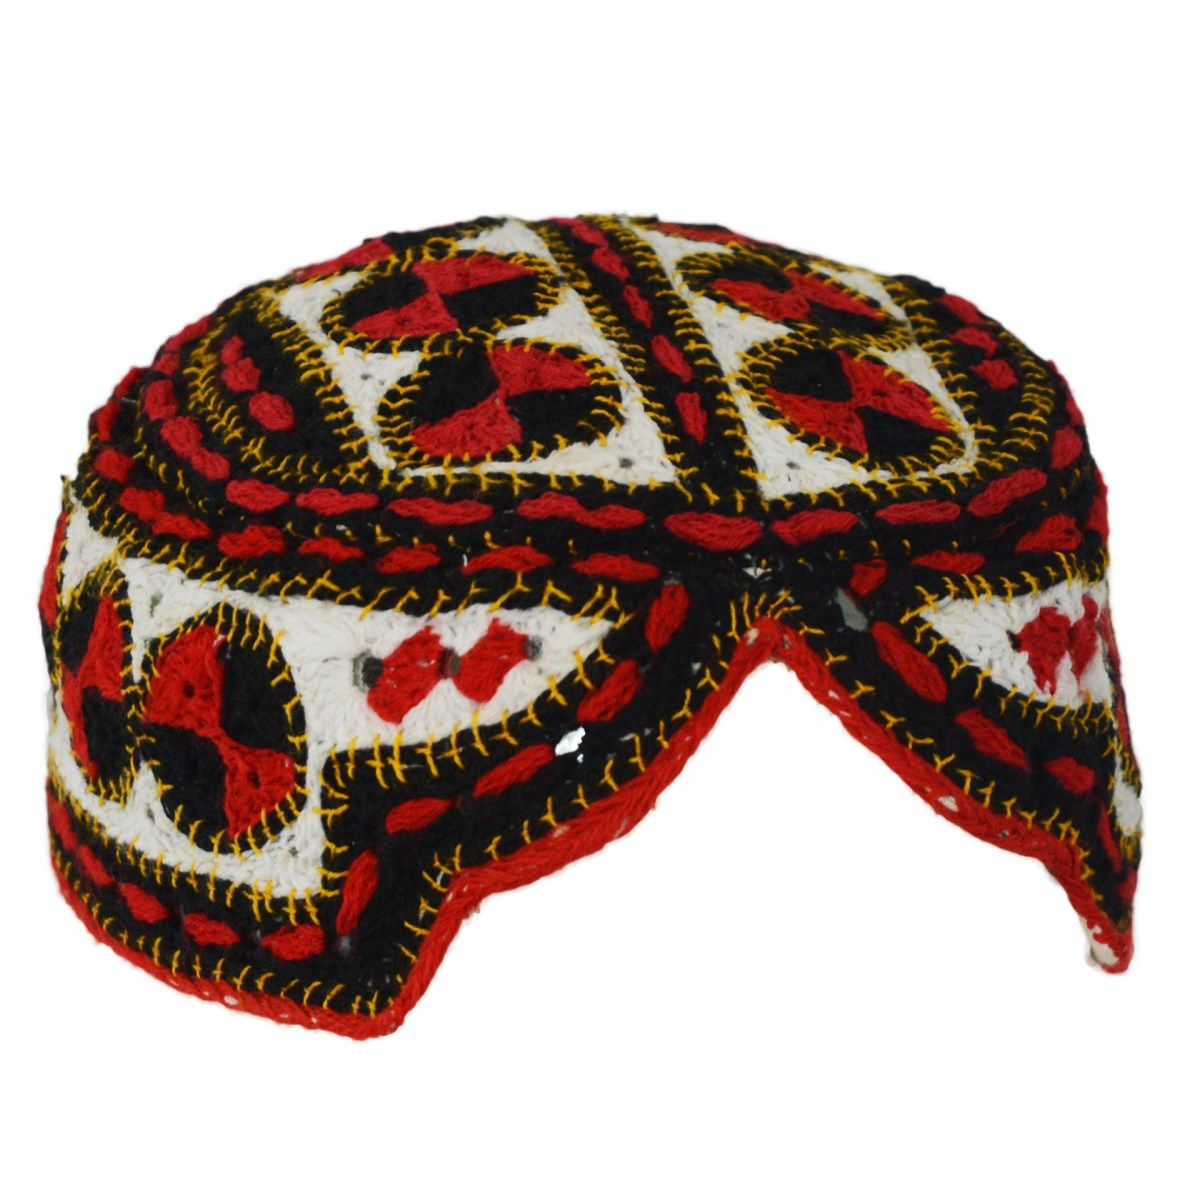 487df549e18 Sindhi Cap Shisha Embroidered Topi with Circular Multicolored Patterns